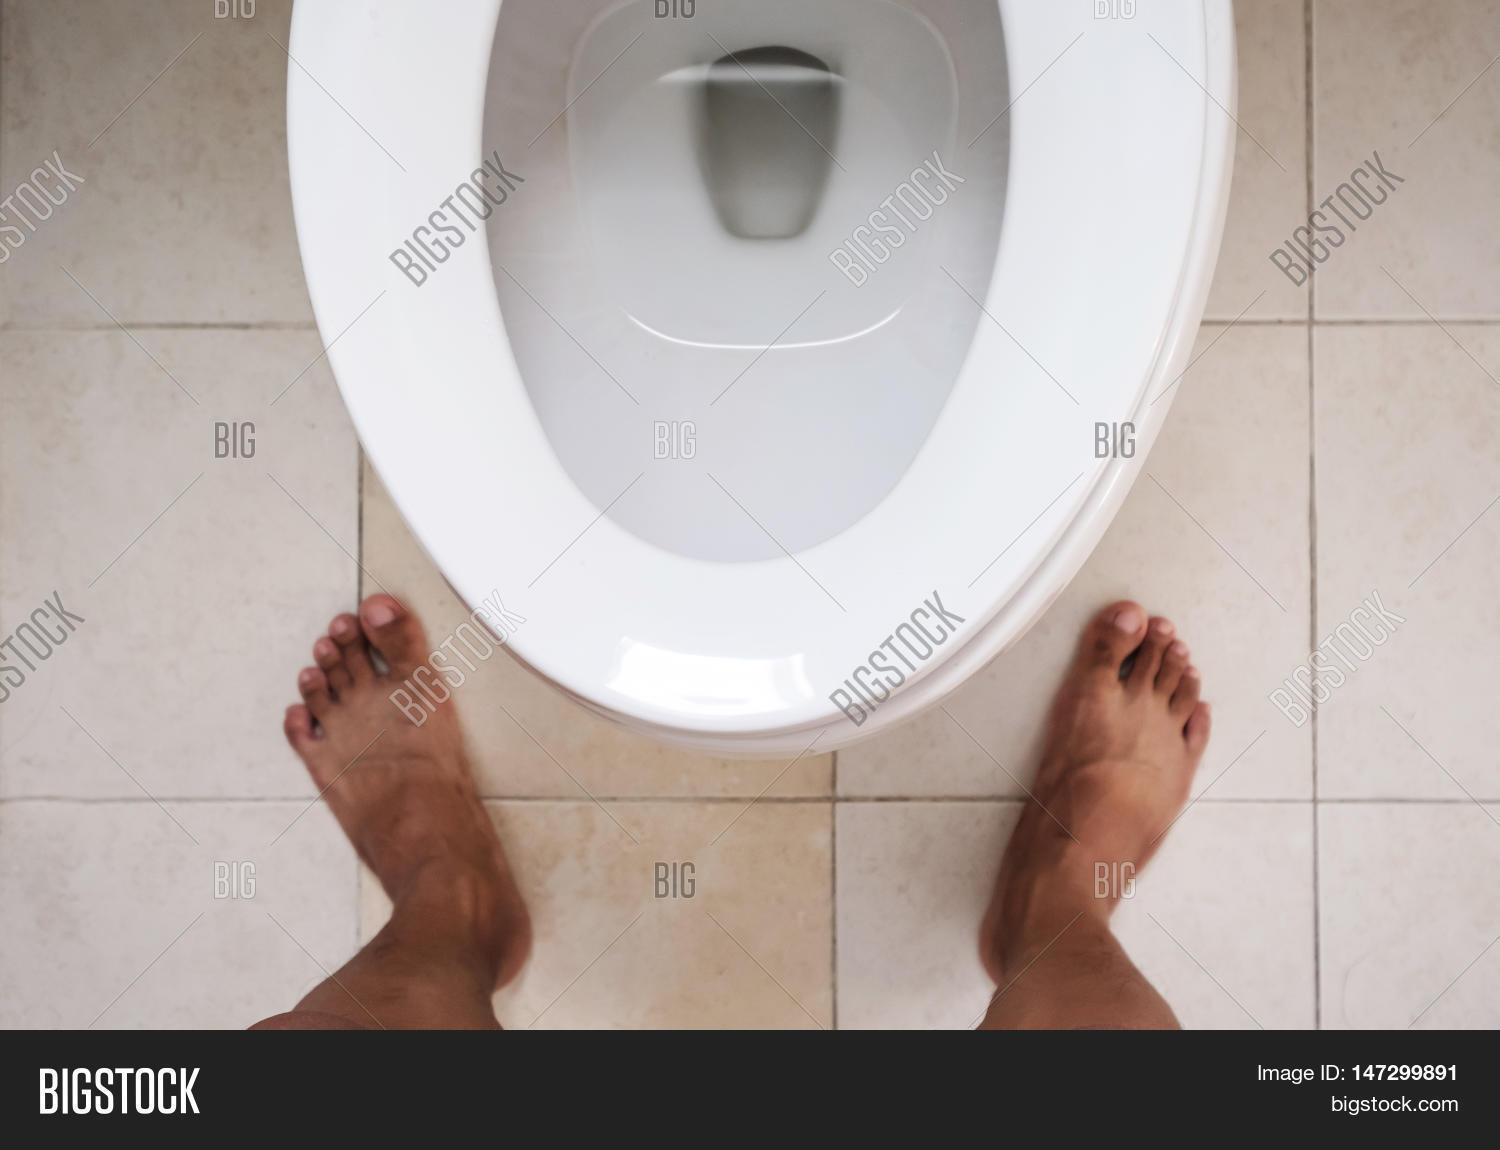 Top View Toilet Lavatory Bare Feet Image Photo Bigstock